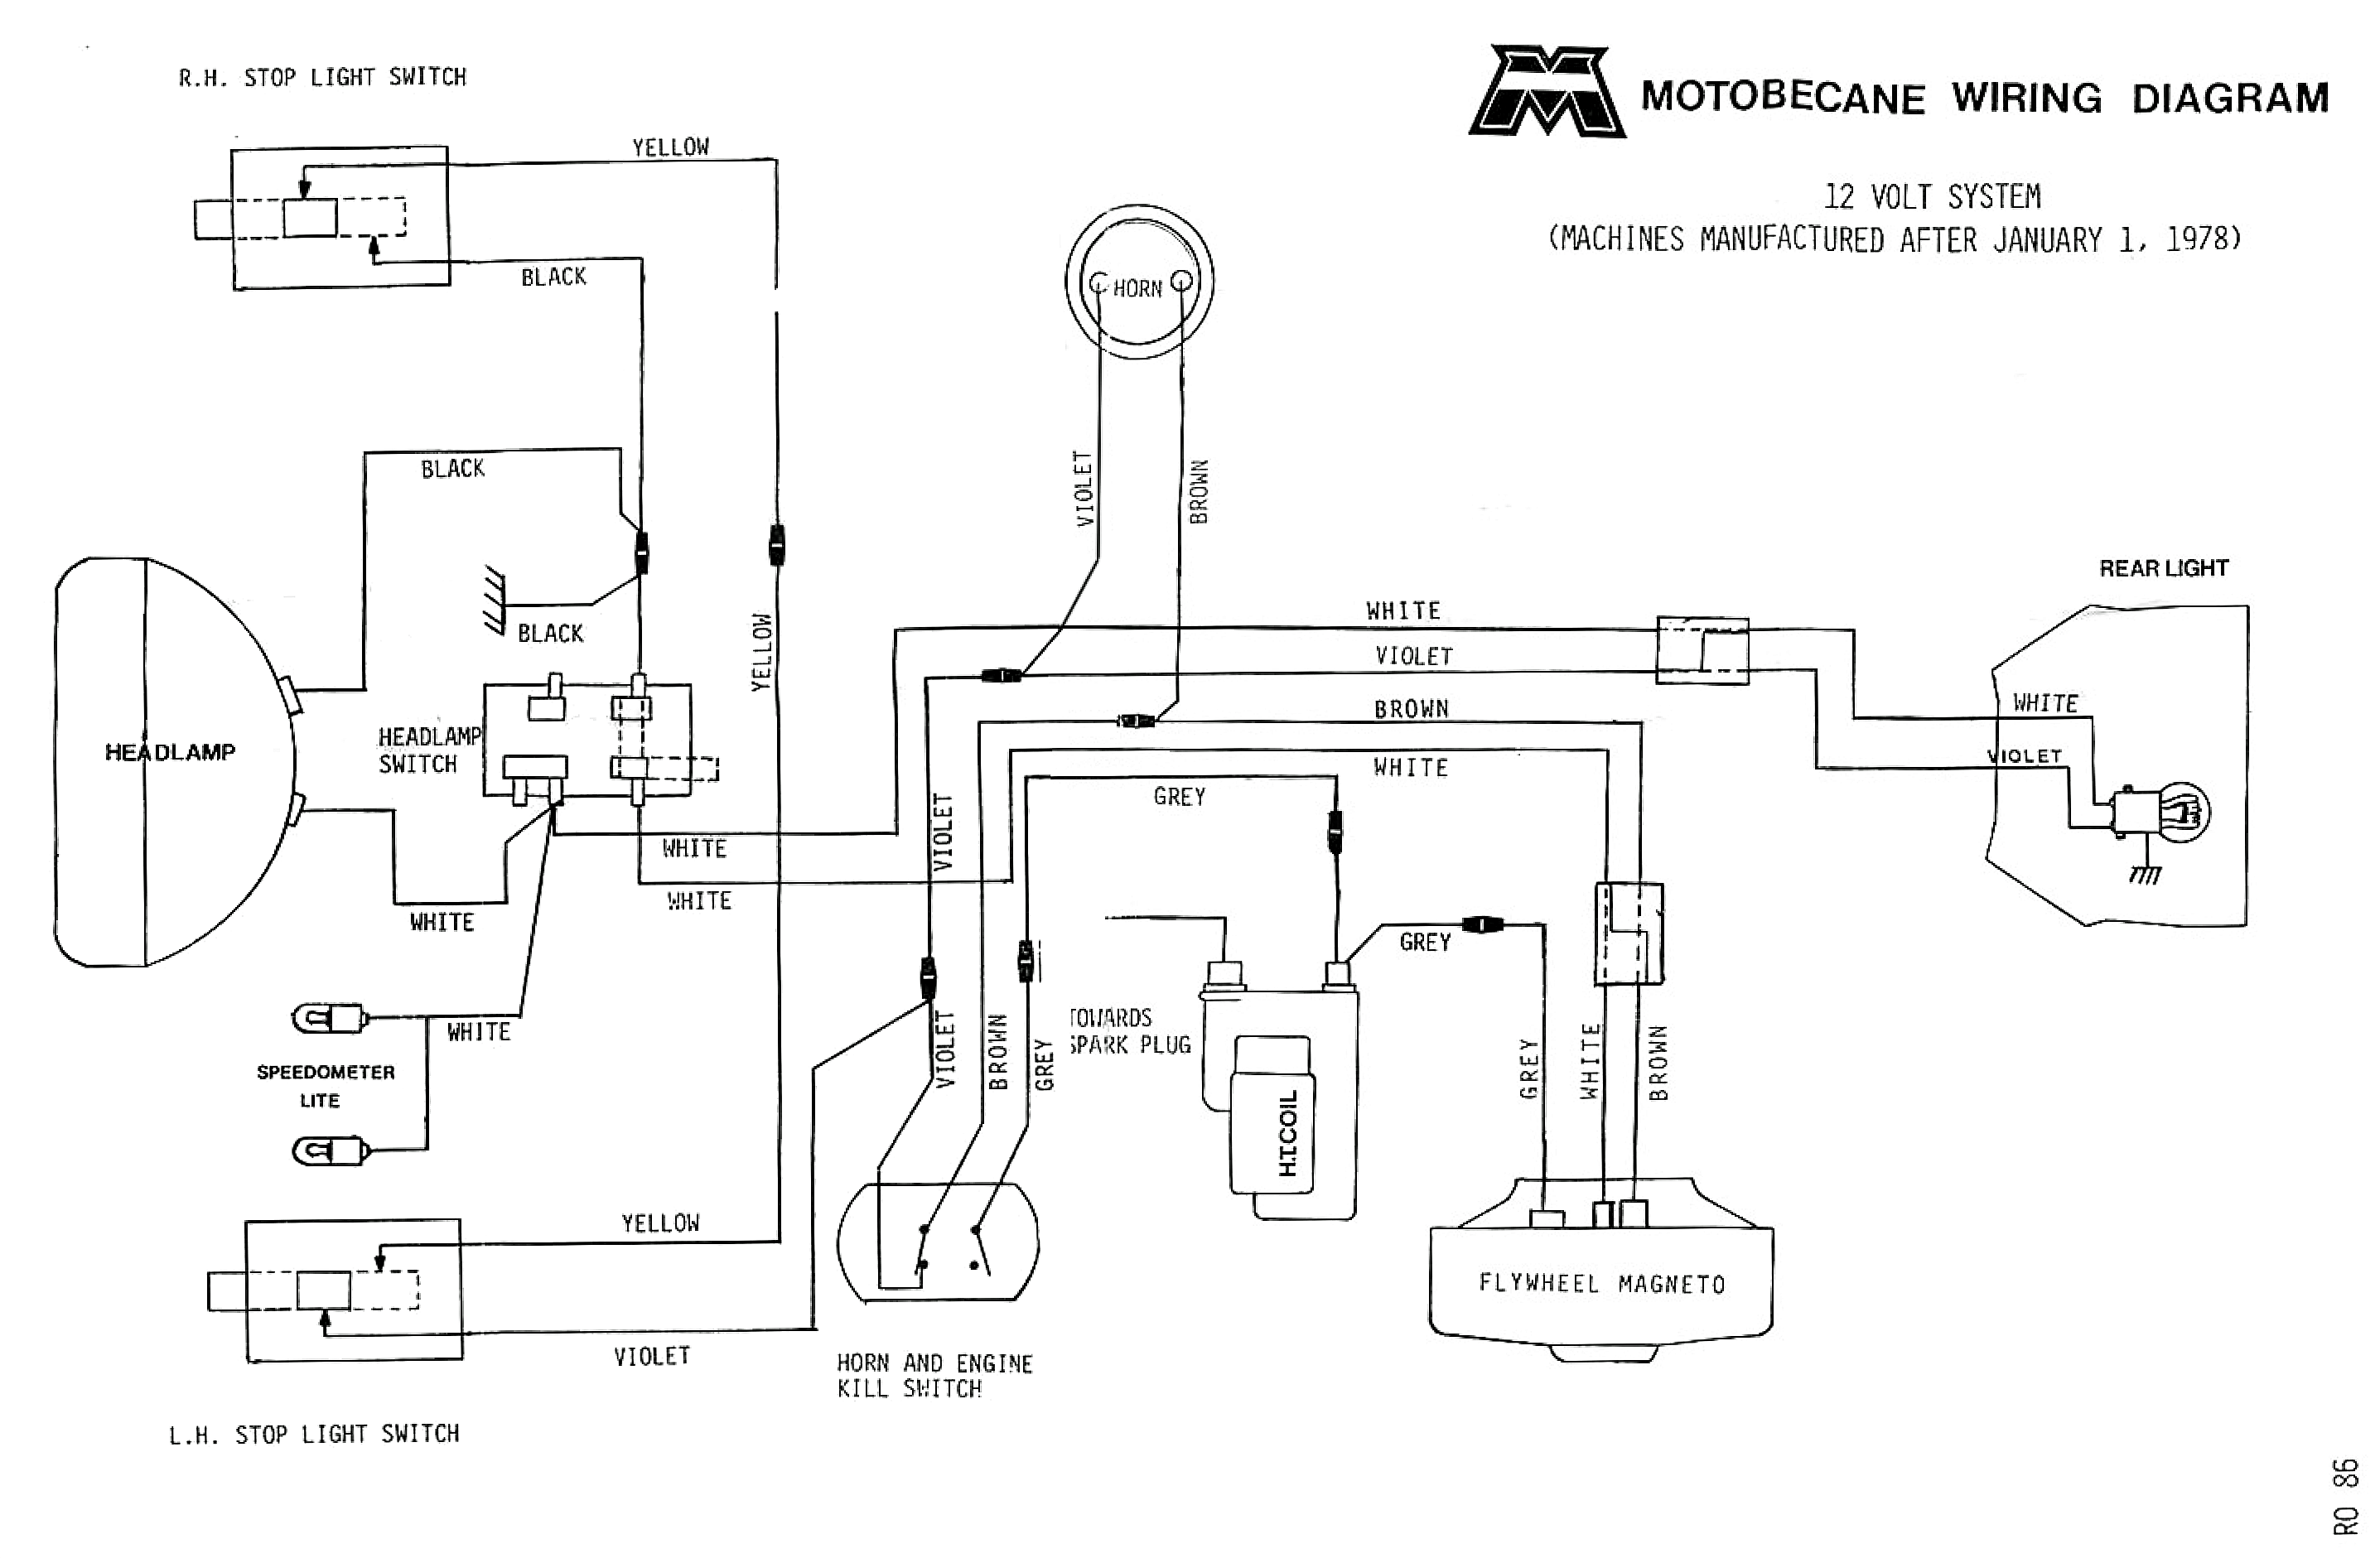 Motobecane wiring diagrams - Moped Wiki on 12 volt battery bank wiring, 12 volt solenoid wiring diagram, 12 volt wiring systems, 12 volt alternator wiring diagram, 12 volt solar wiring diagram, 12 volt battery in series diagram, 12 volt rv wiring diagram, pinout diagrams,